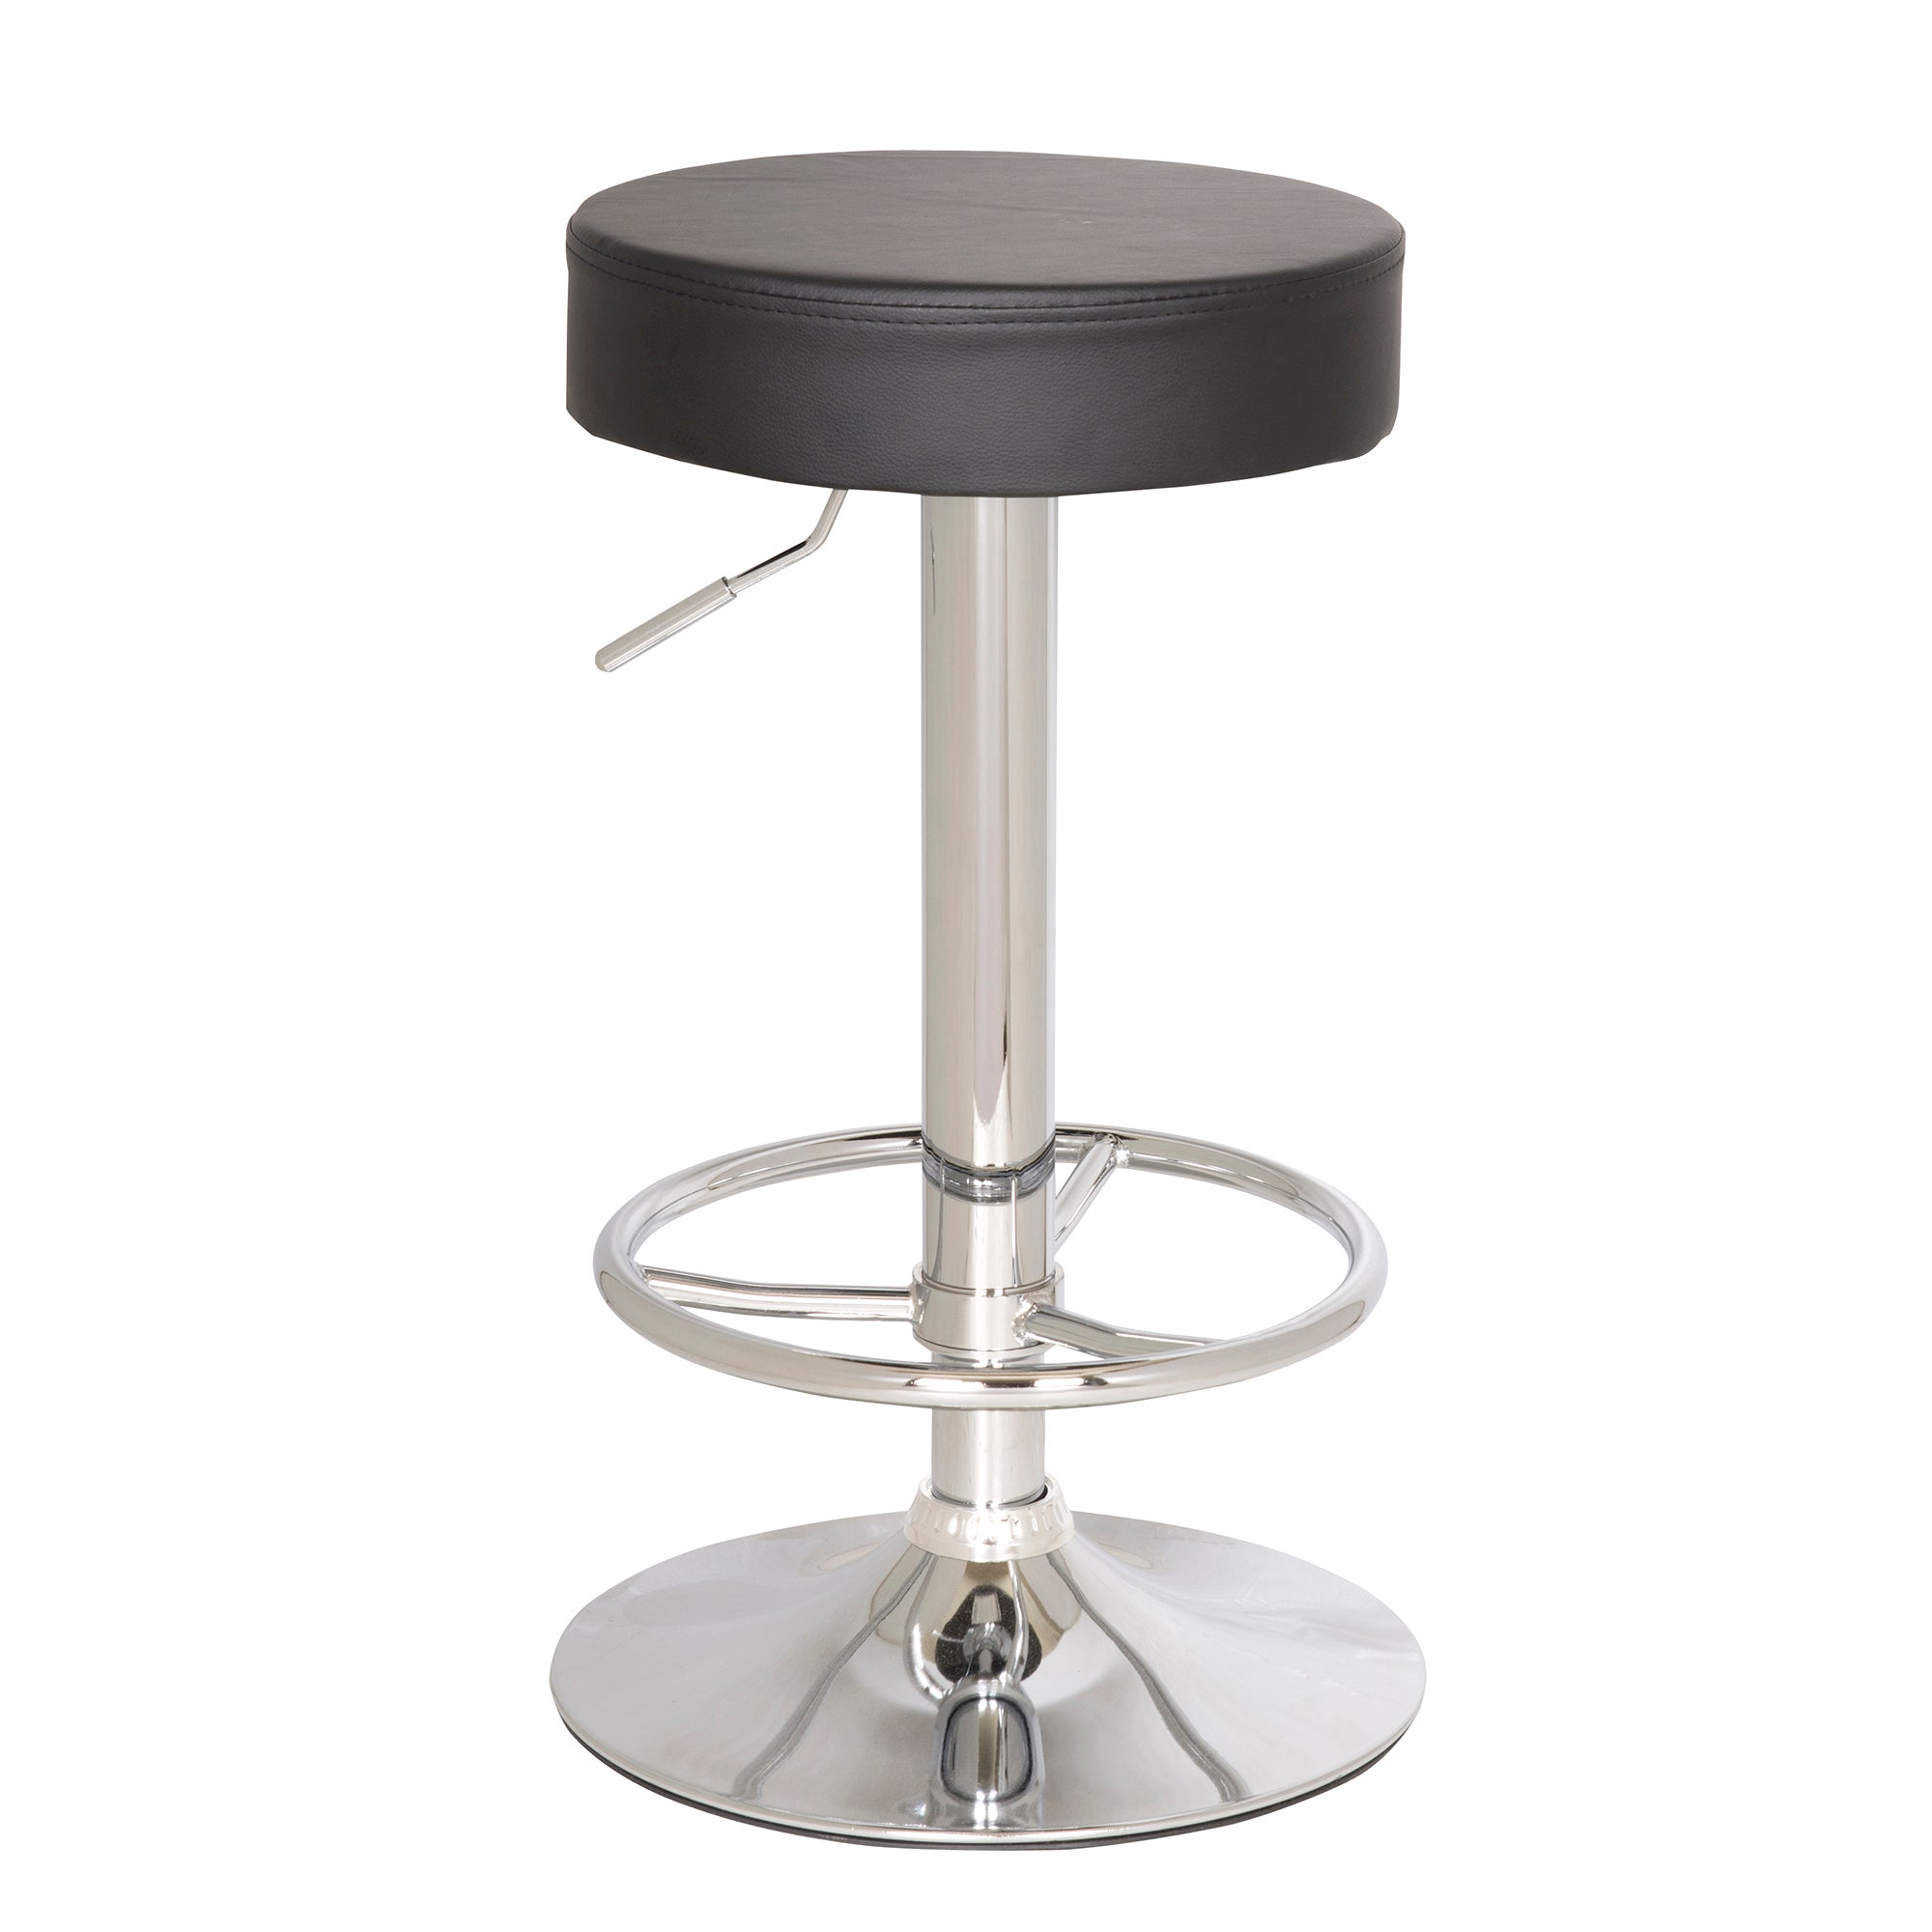 Vesper Upholstered Gas Lift Bar Stool